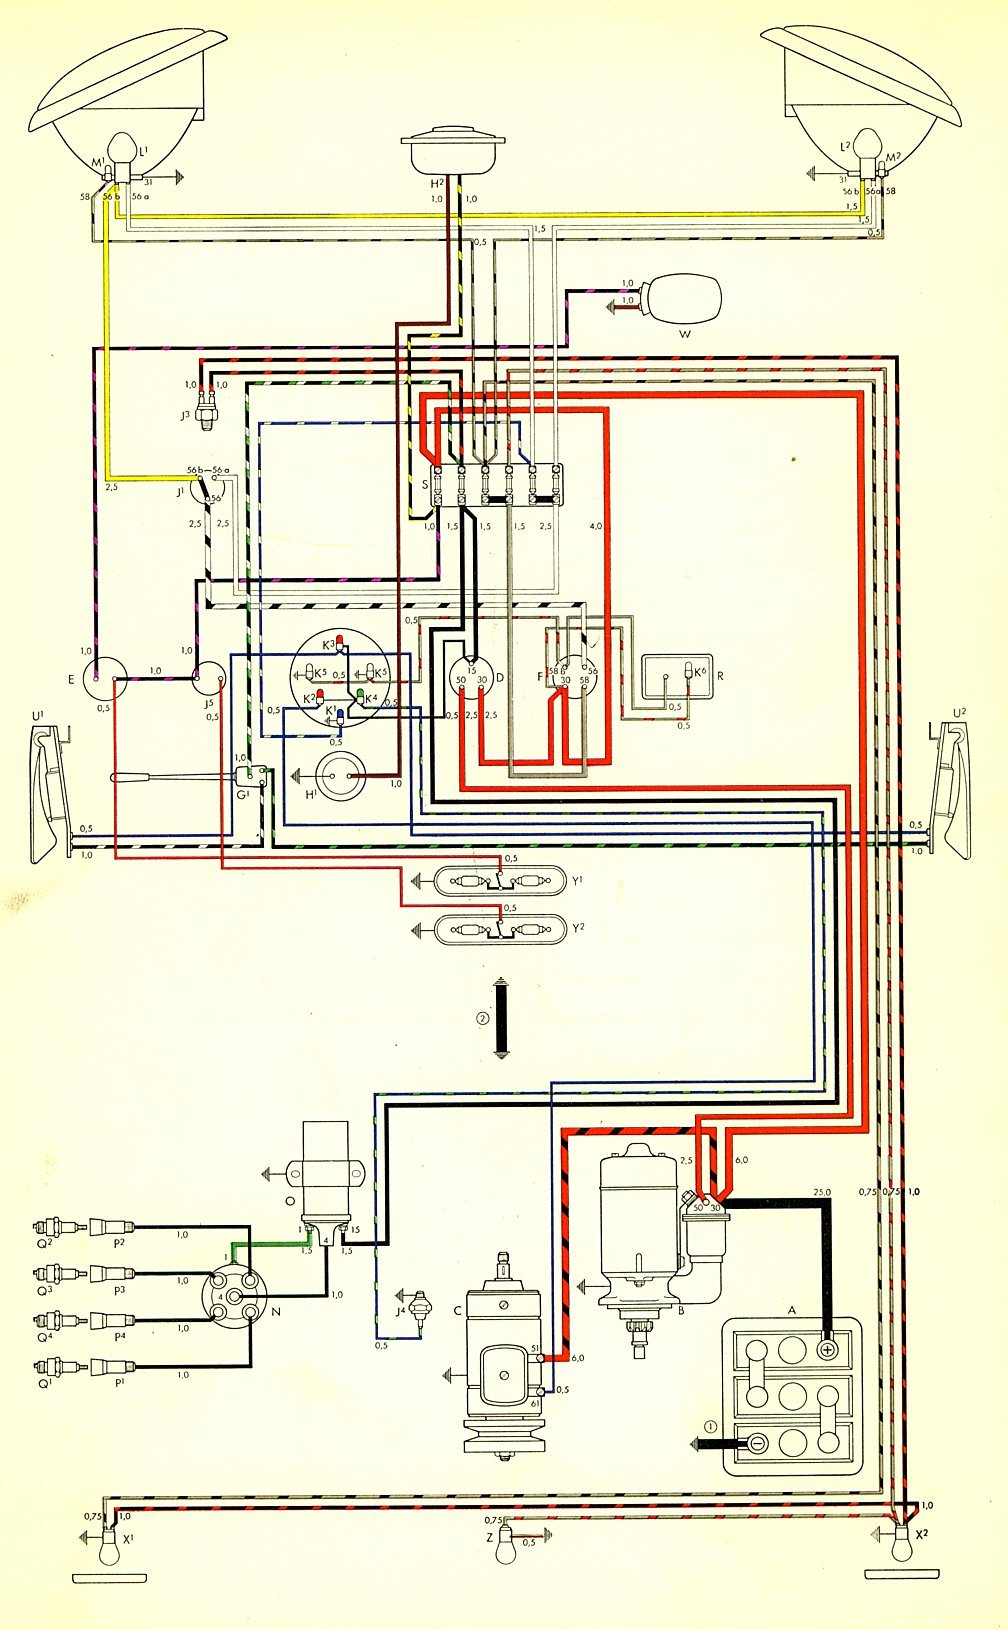 bus_59 wiring diagram for 1971 vw bus readingrat net 1978 vw bus fuse box diagram at metegol.co